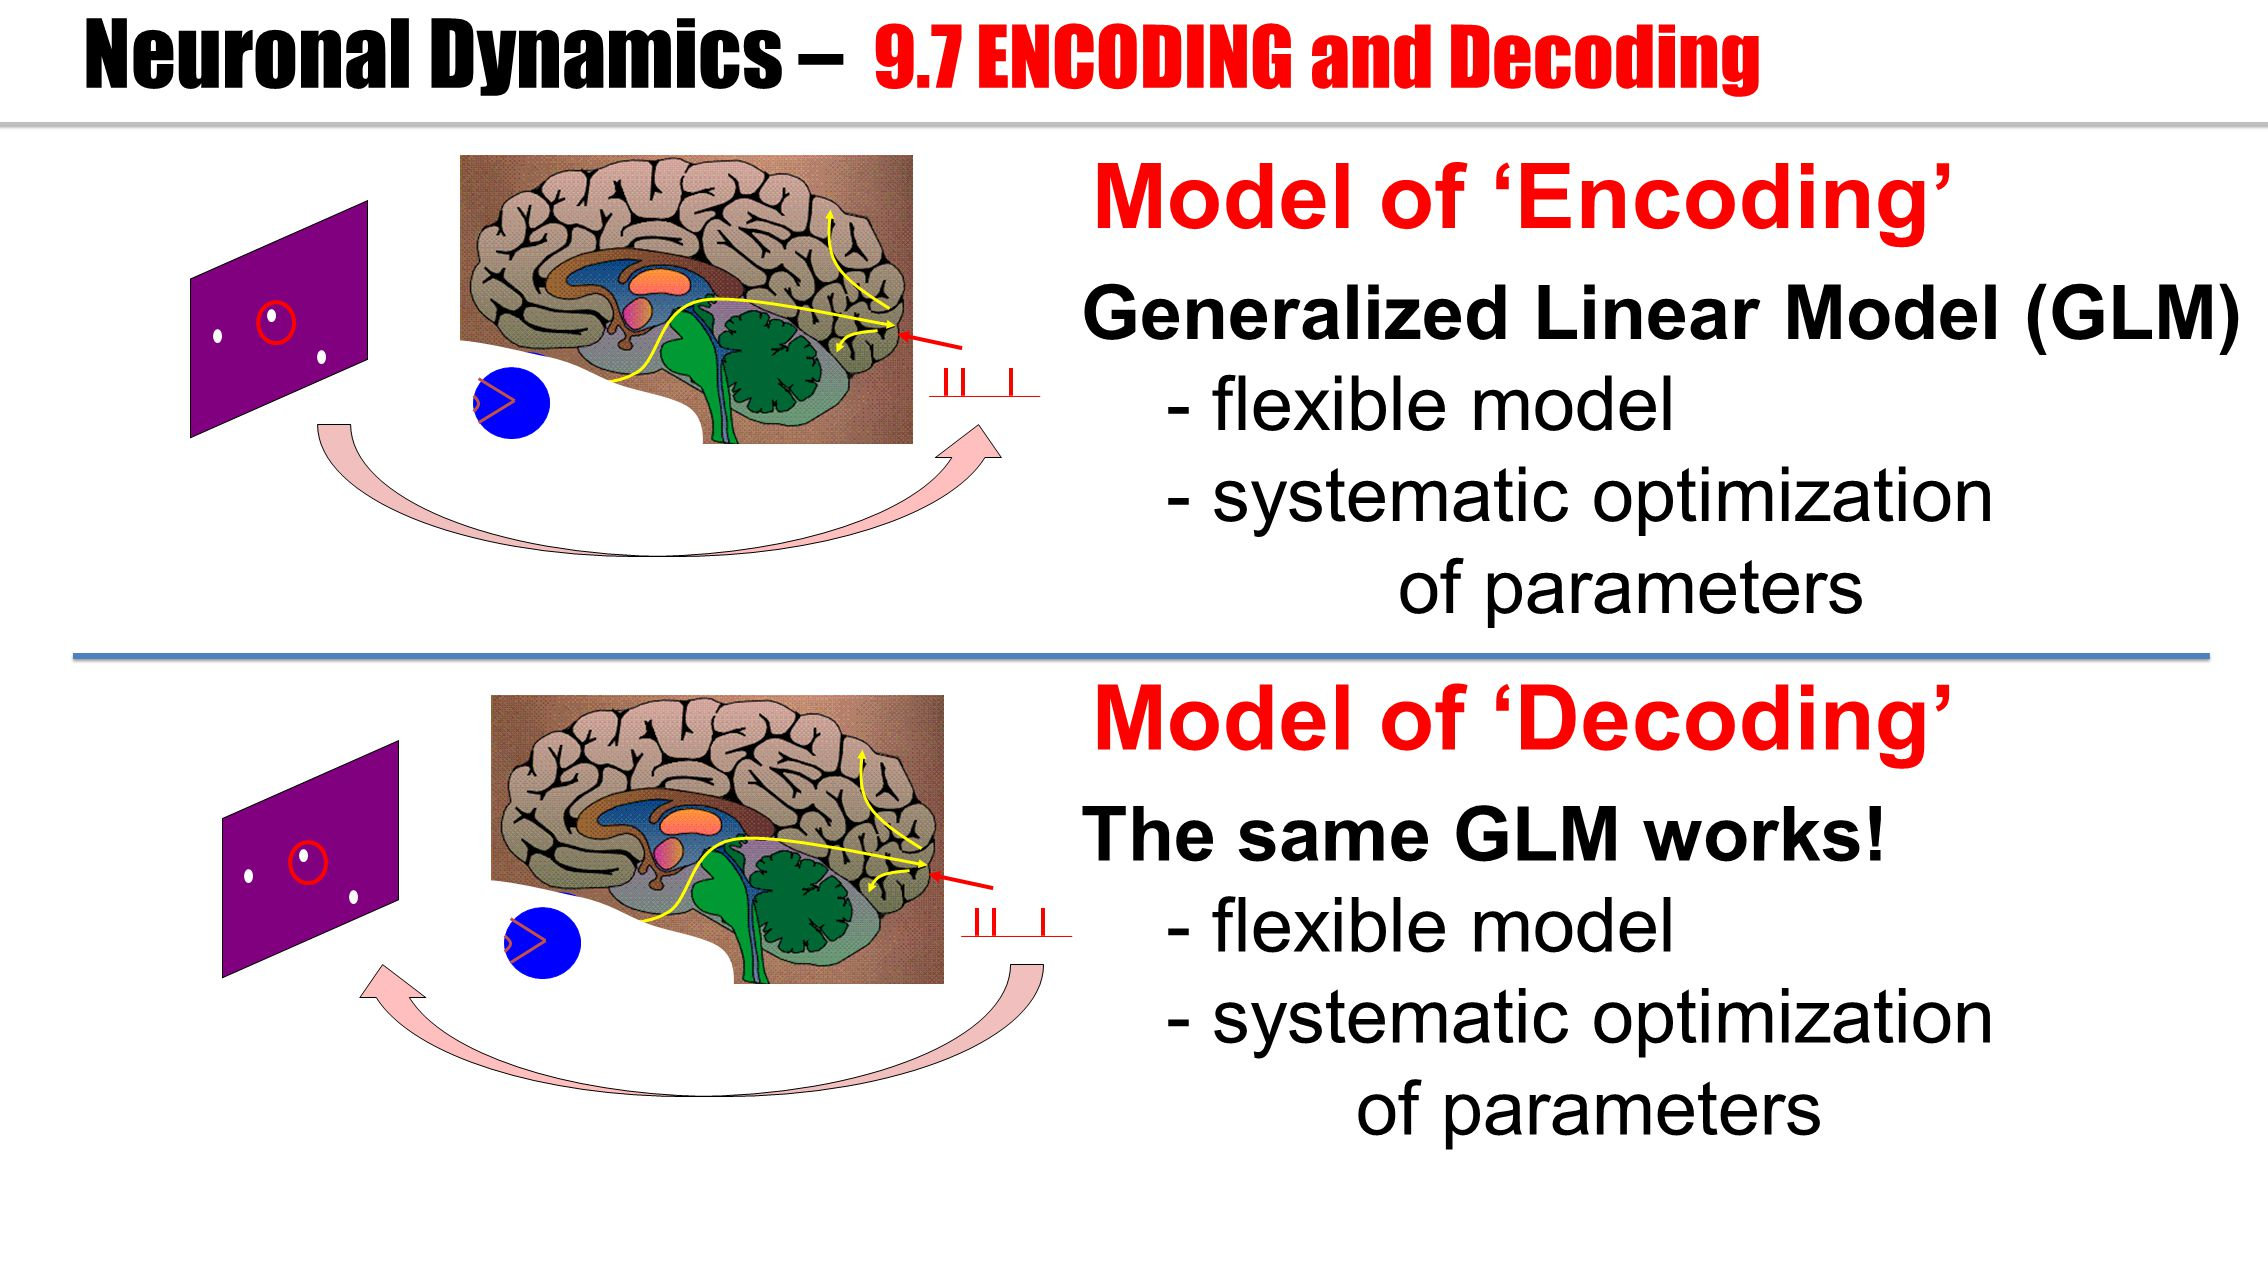 Model of 'Encoding' Neuronal Dynamics – 9.7 ENCODING and Decoding Generalized Linear Model (GLM) - flexible model - systematic optimization of parameters Model of 'Decoding' The same GLM works.